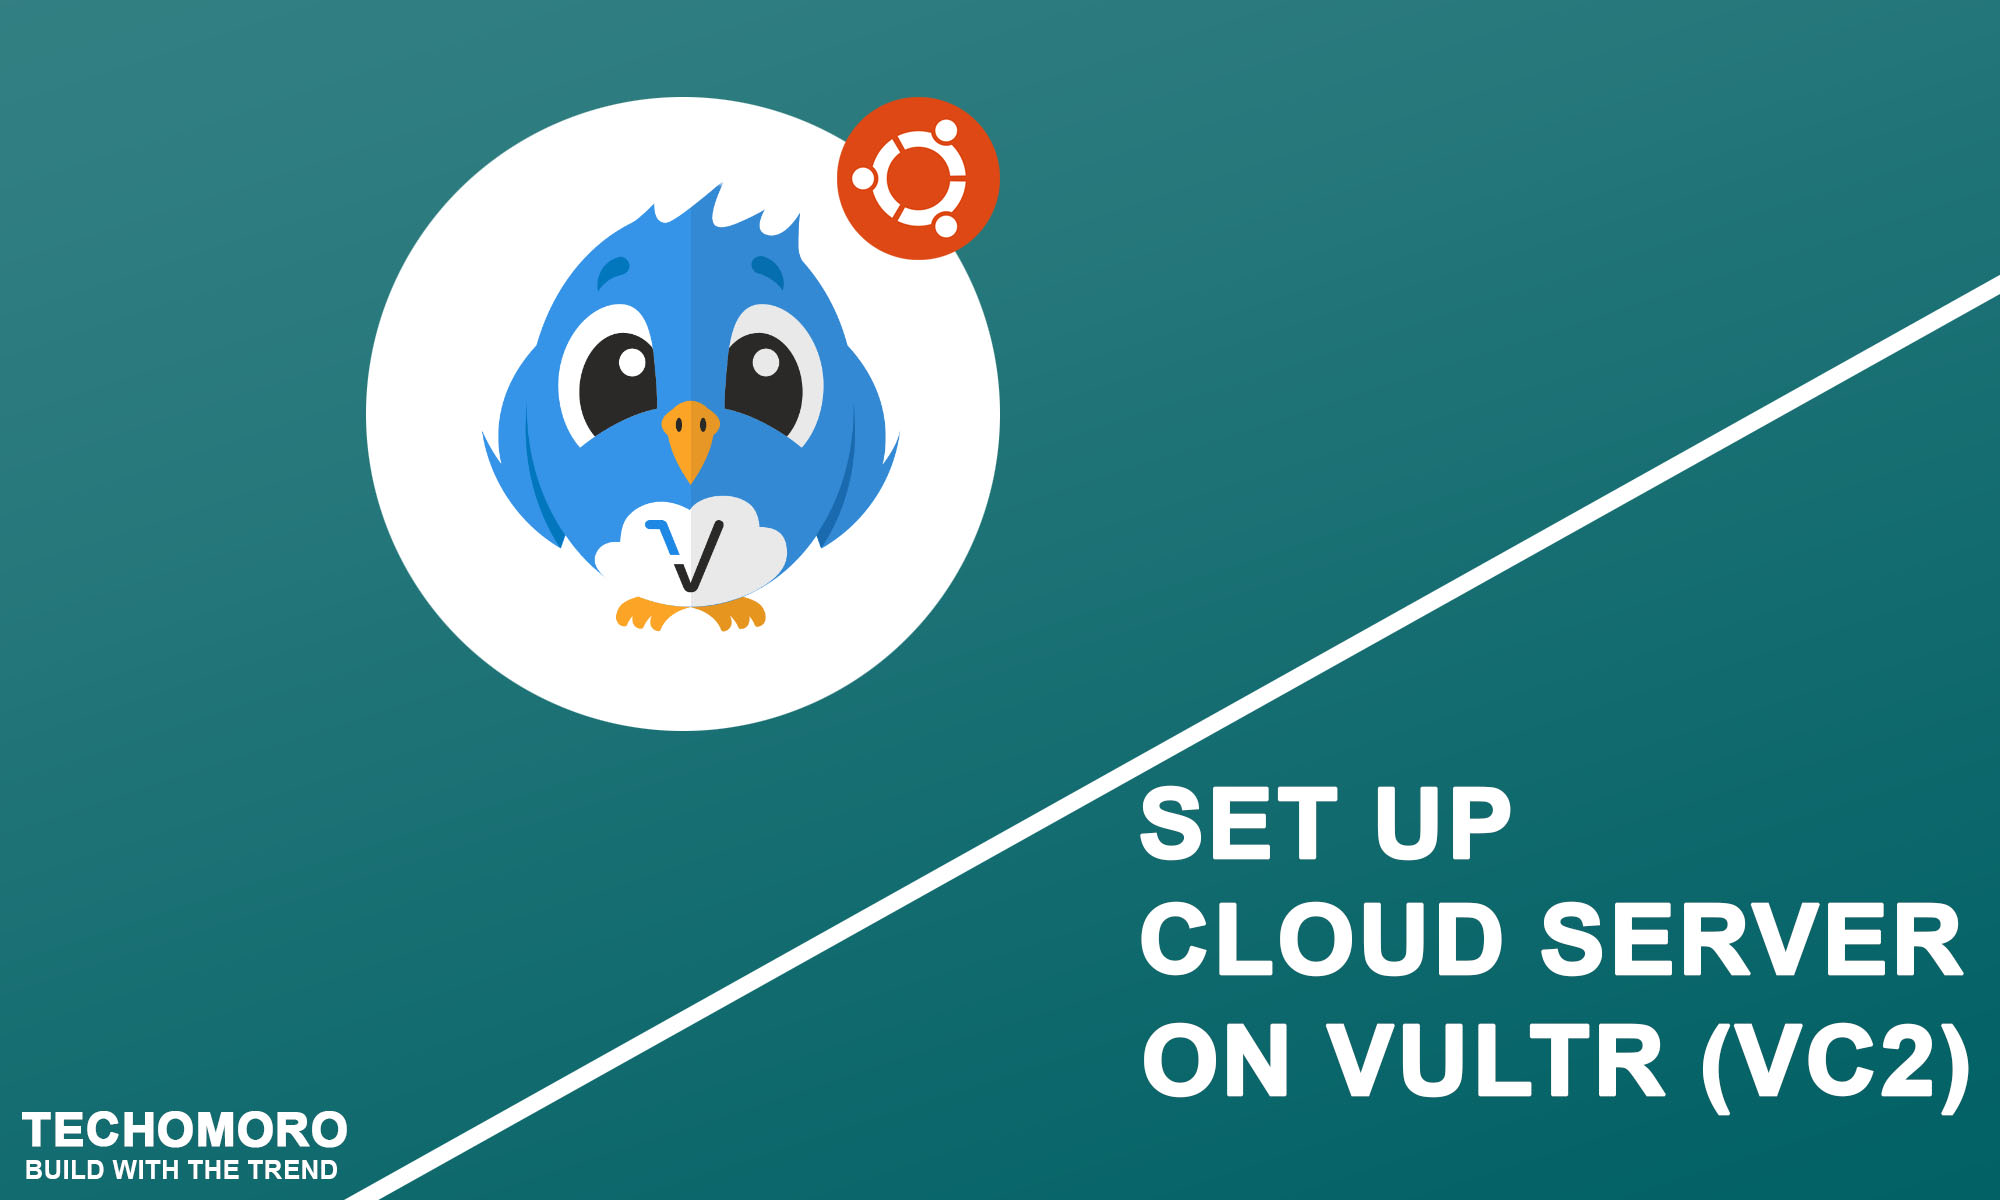 How to Set Up Your Own Cloud Server on Vultr (VC2)